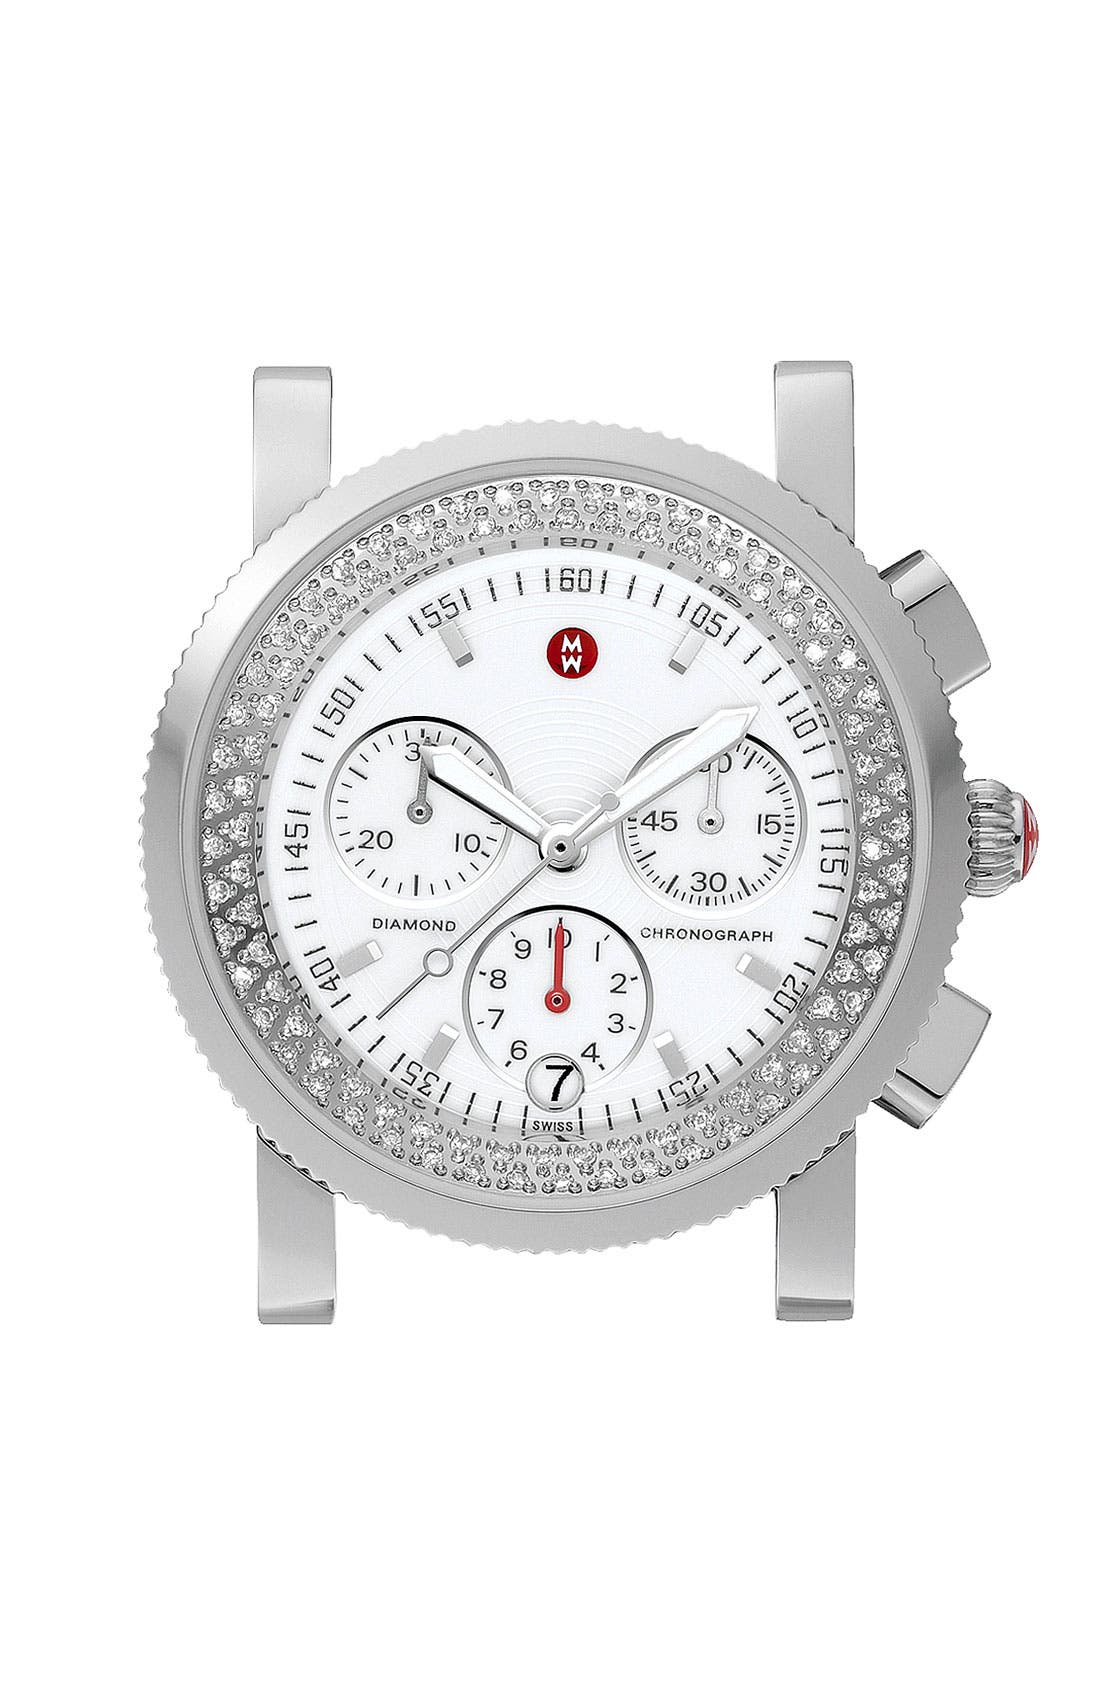 Main Image - MICHELE 'Sport Sail' Diamond Watch Case, 38mm